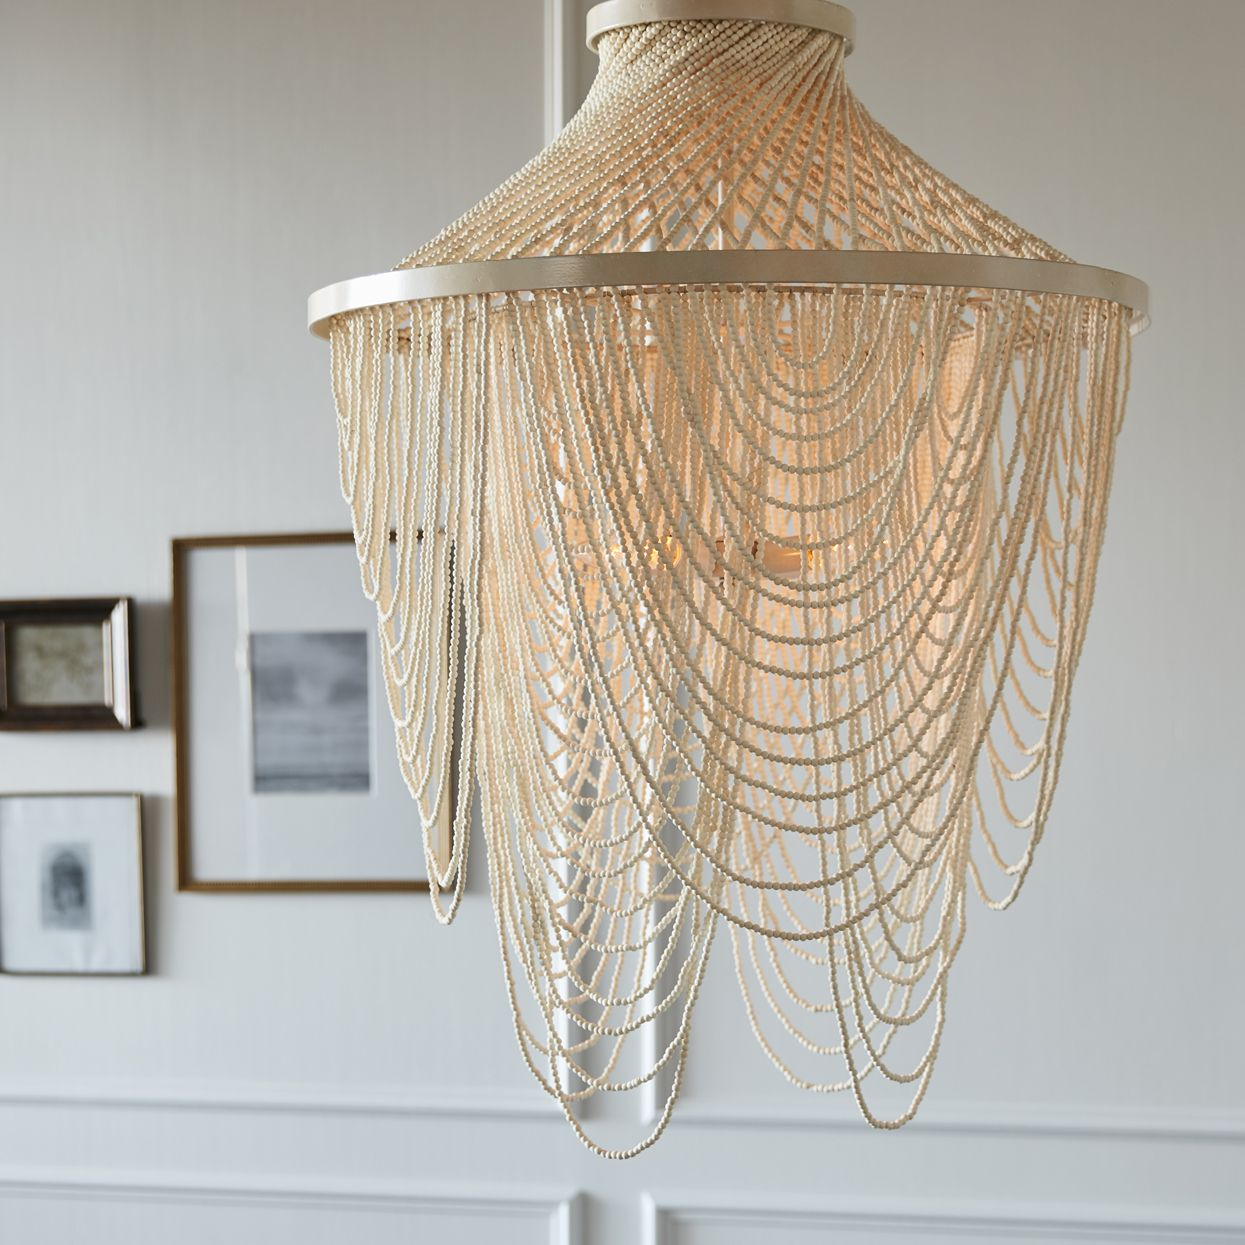 PALECEK MARIANA BEADED CHANDELIER Chandelier is fully beaded with tiny wood beads in a soft white finish complete with a cream finished chain and canopy for ... & PALECEK MARIANA BEADED CHANDELIER Chandelier is fully beaded with ...